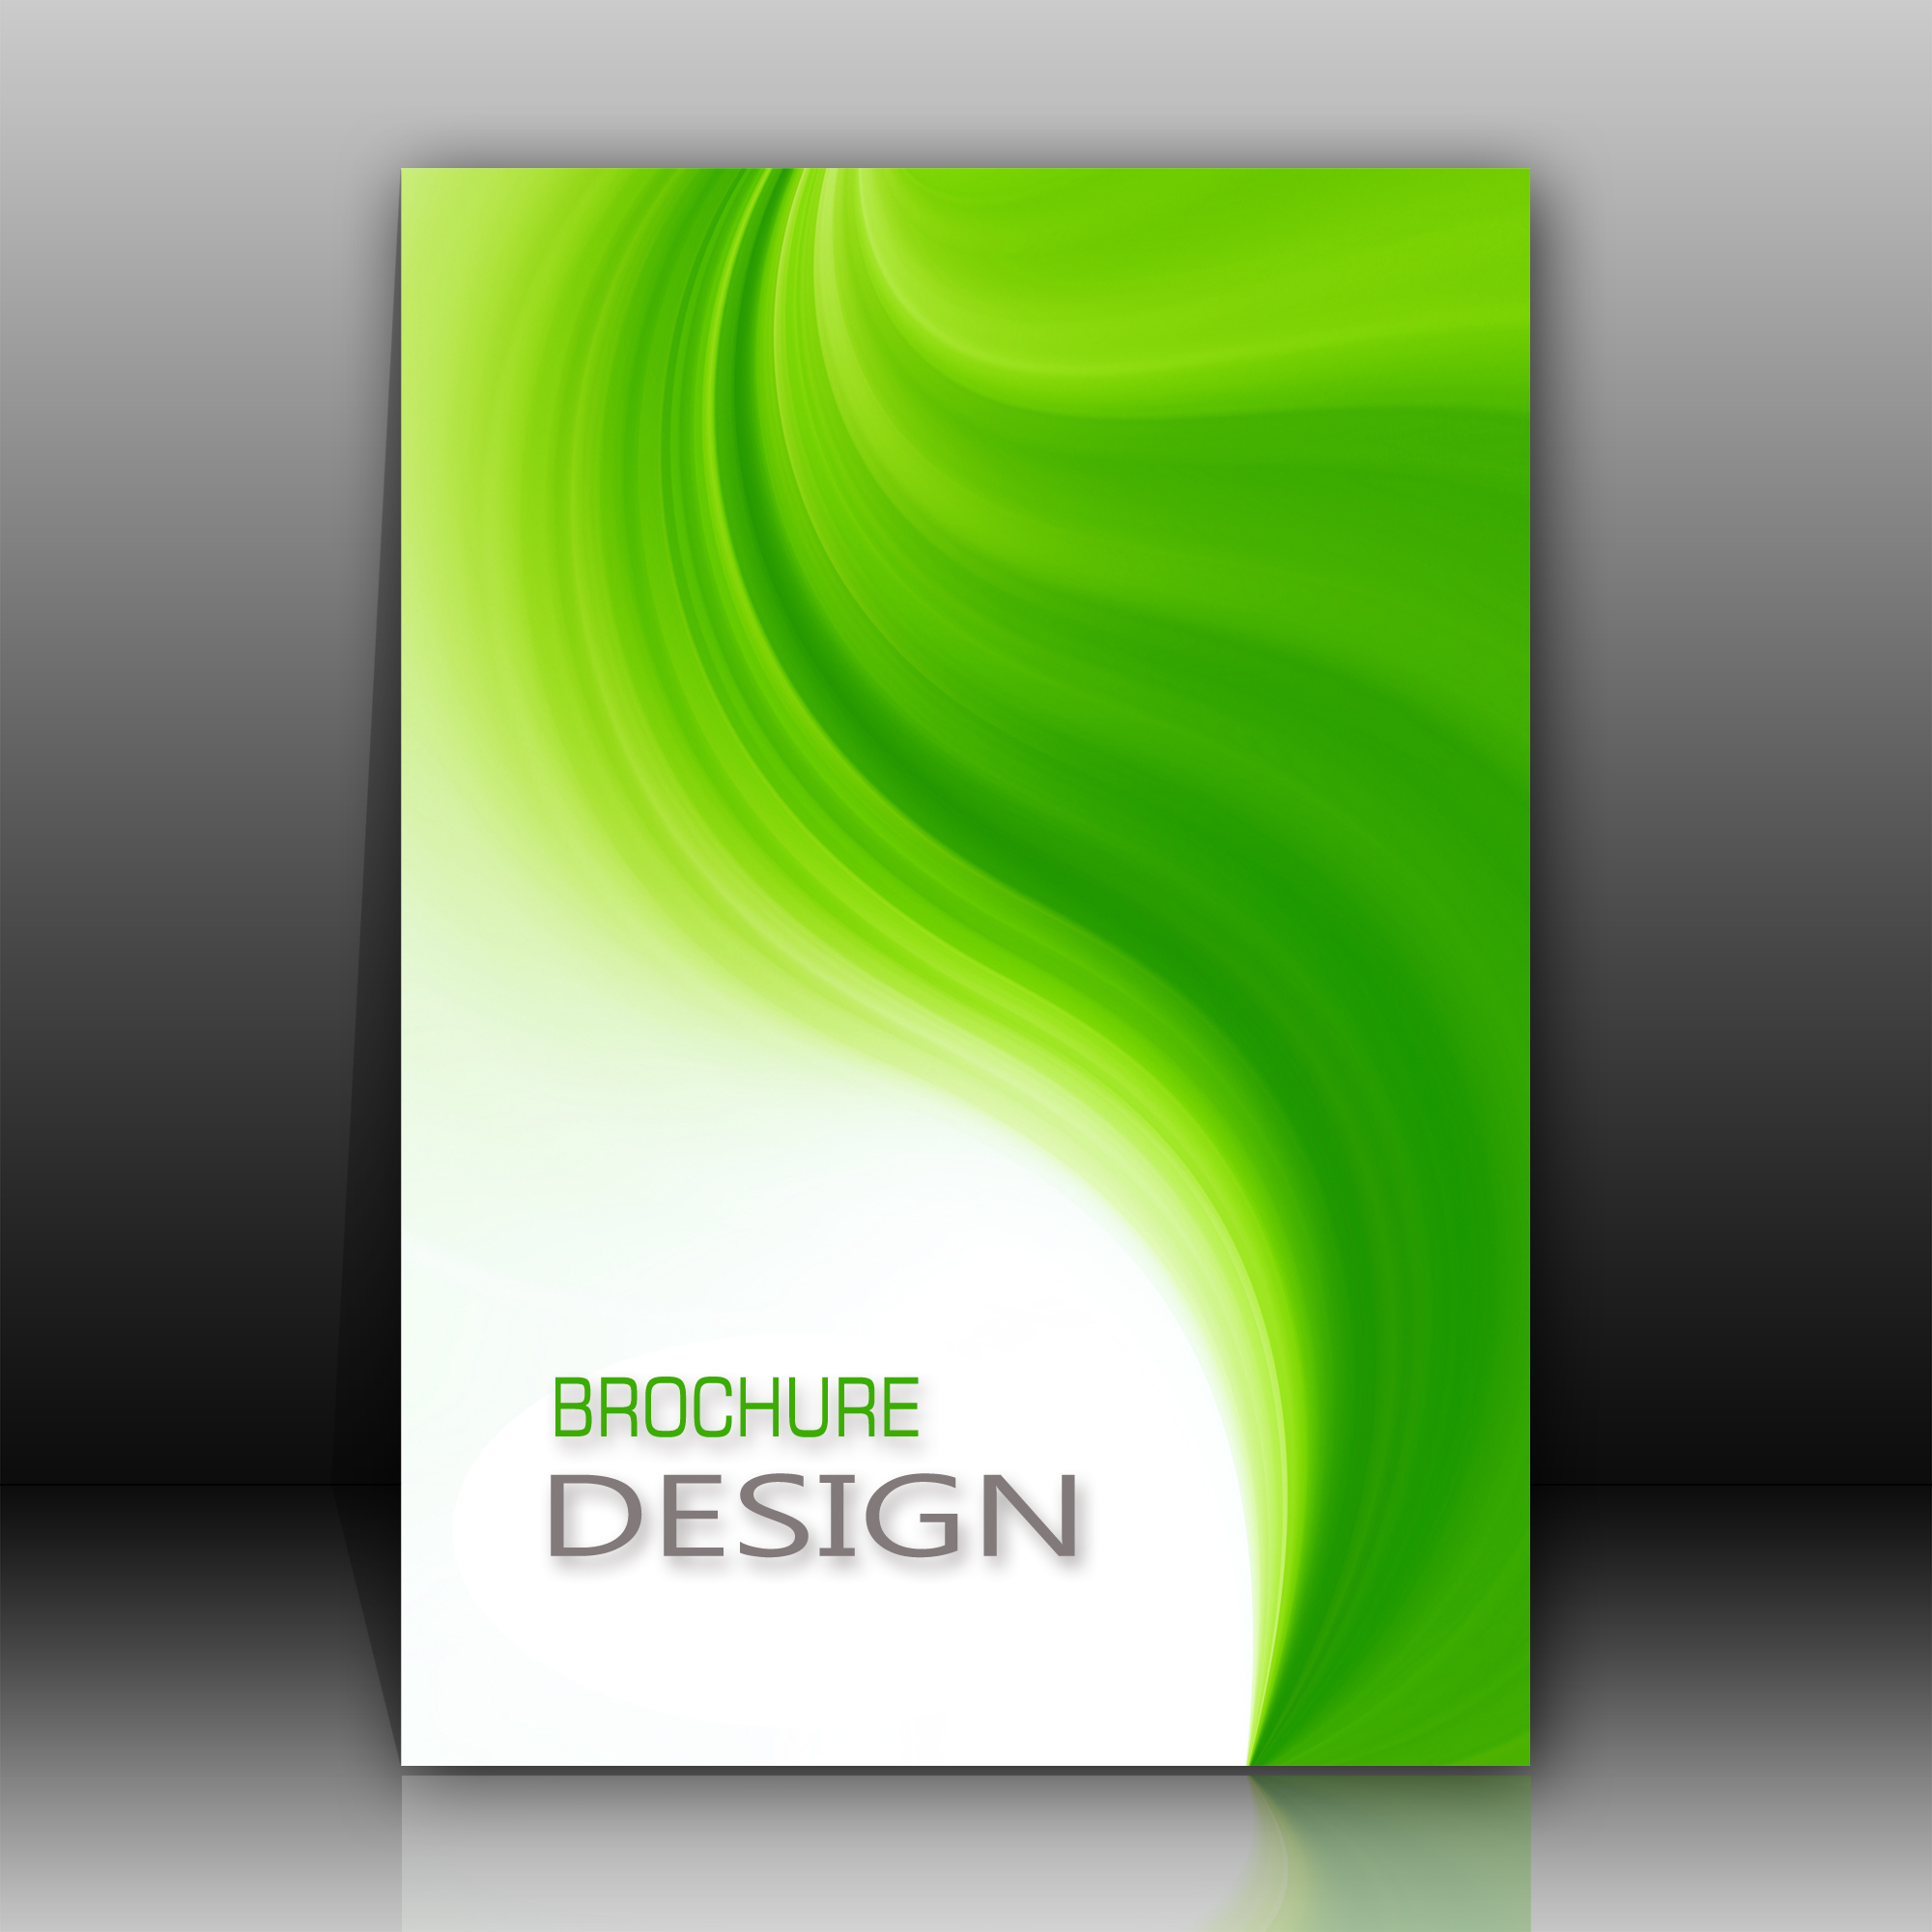 green-and-white-brochure-design_1123-110 Cement Letterhead Template on monogram personal, find free, for word free, cleaning company, graphic design,